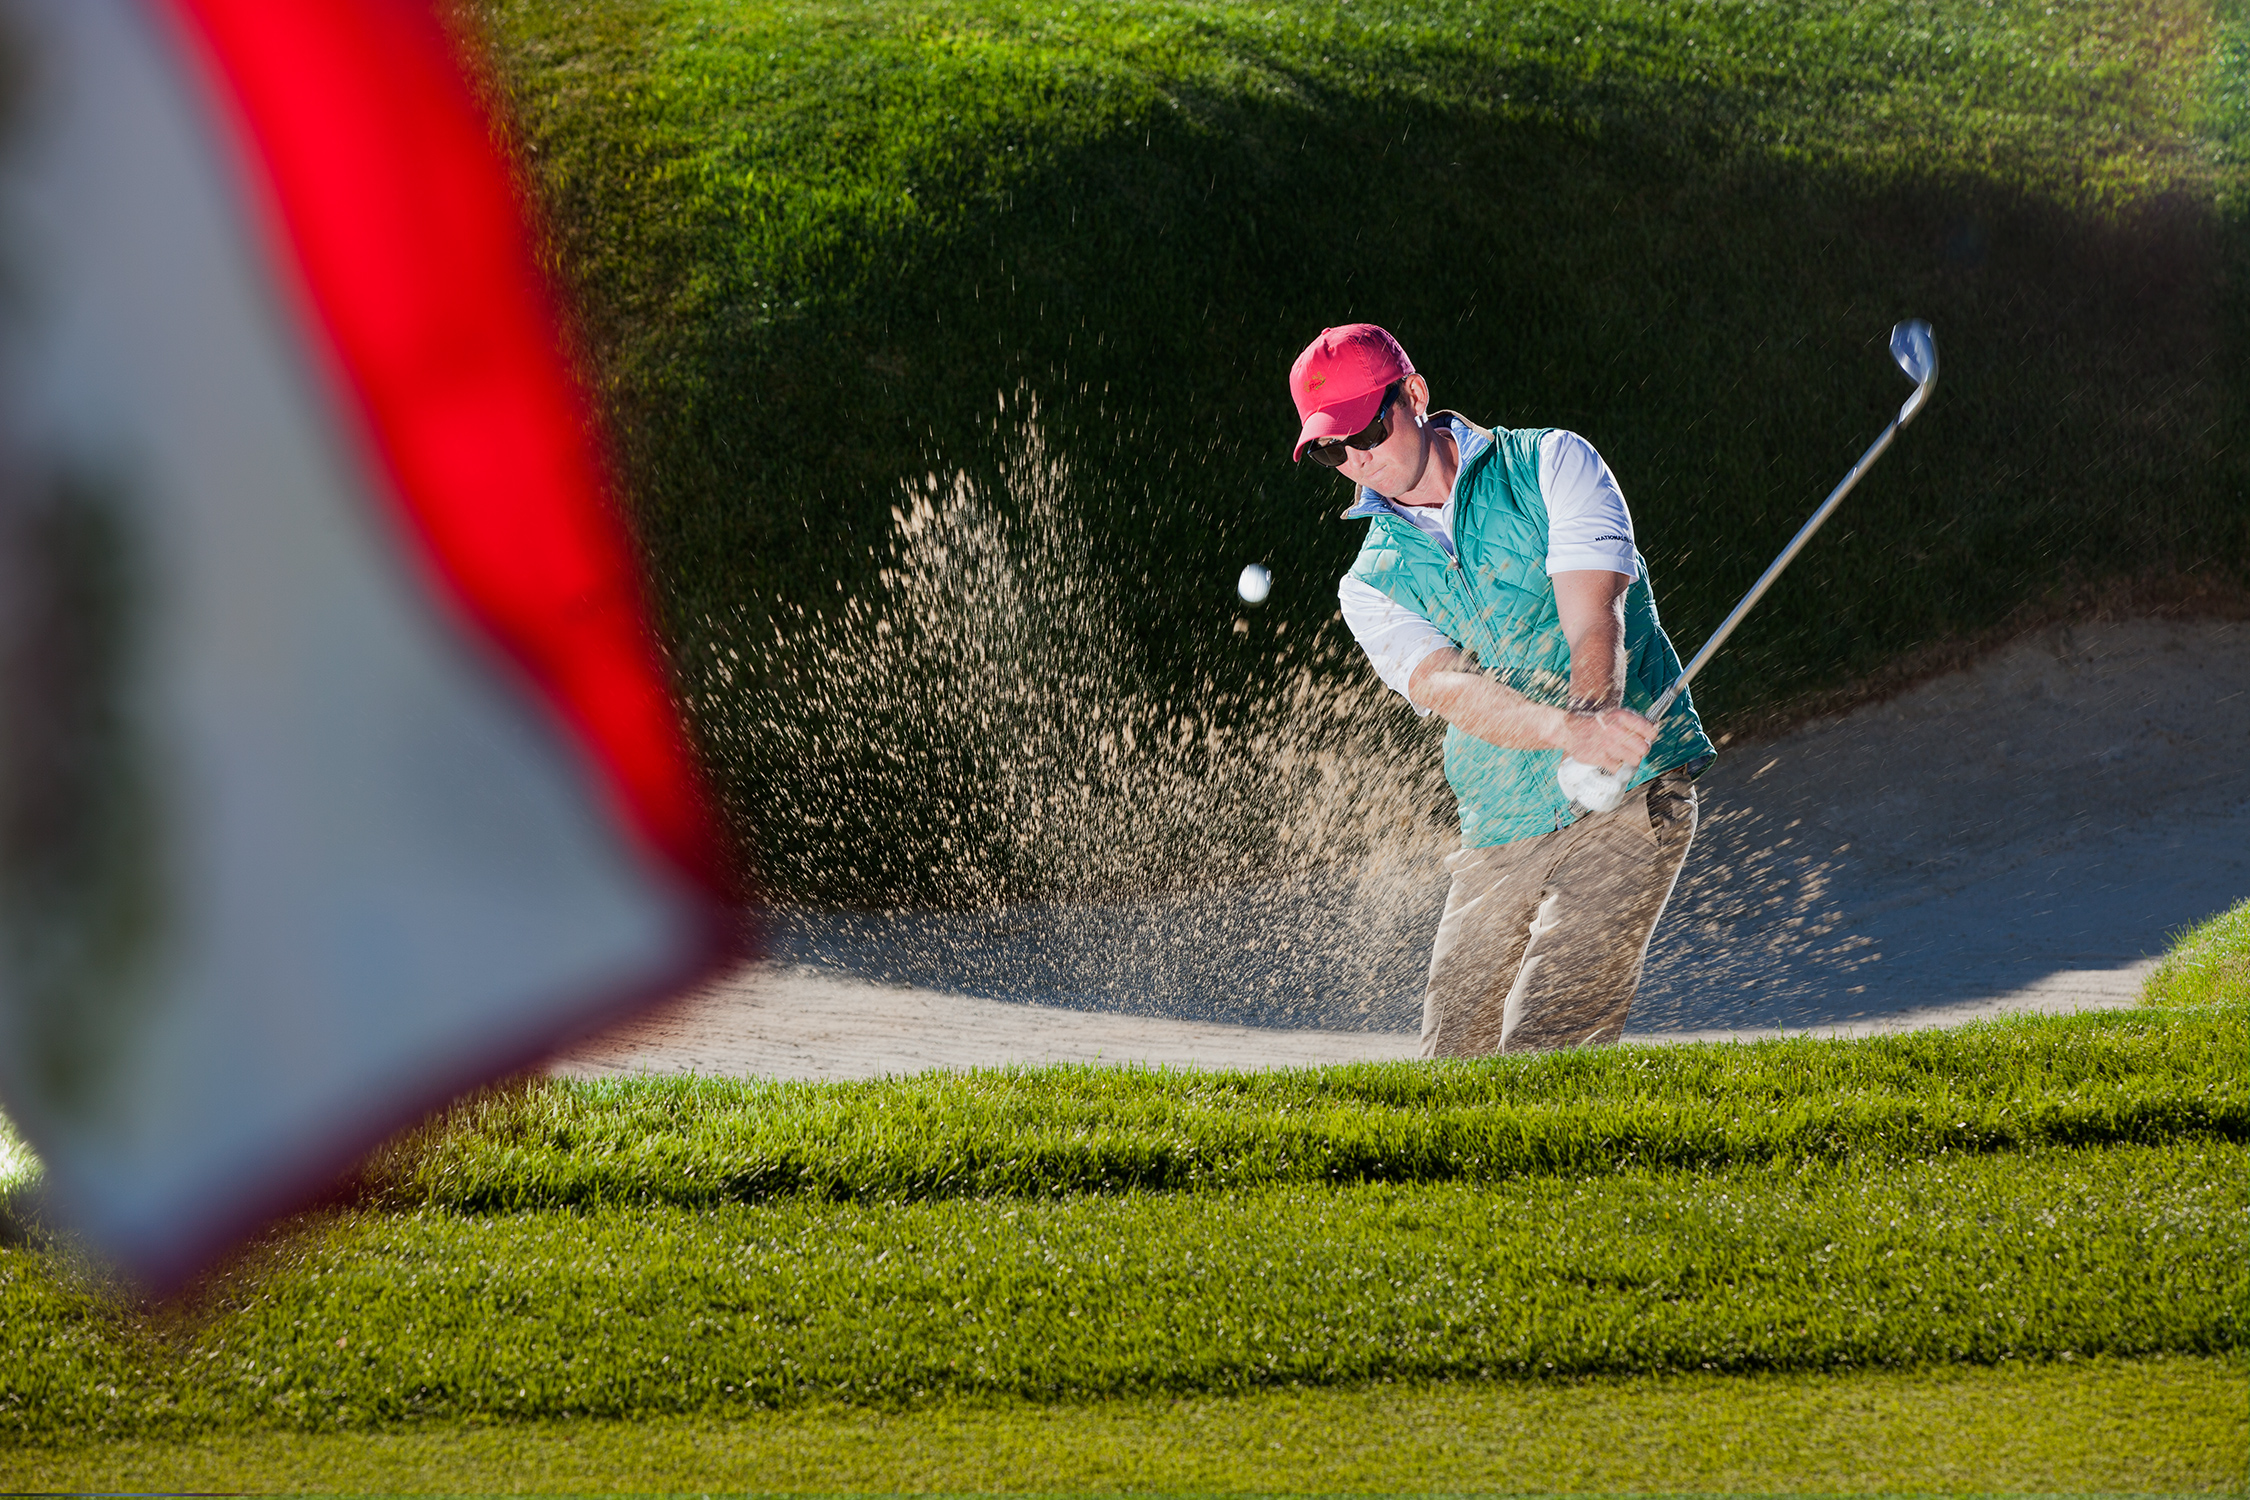 JUSTIN-FOSTER GOLF PRO SPORTS CREATIVE SPORTS PORTRAIT SAND TRAP PGA 101917 ©-JONATHAN-R.-BECKERMAN-PHOTOGRAPHY 1.jpg